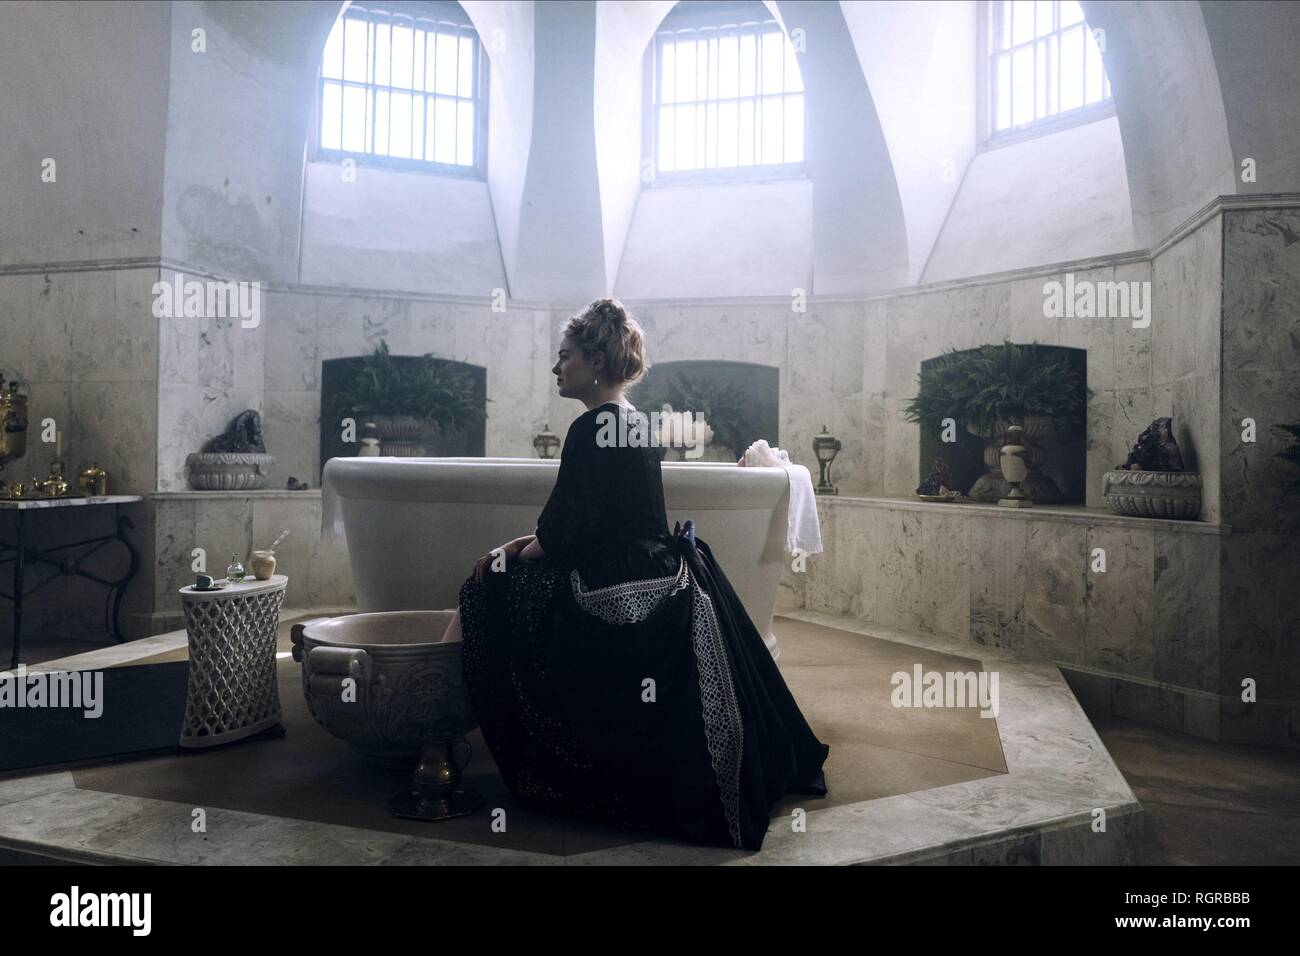 EMMA STONE THE FAVOURITE (2018) - Stock Image